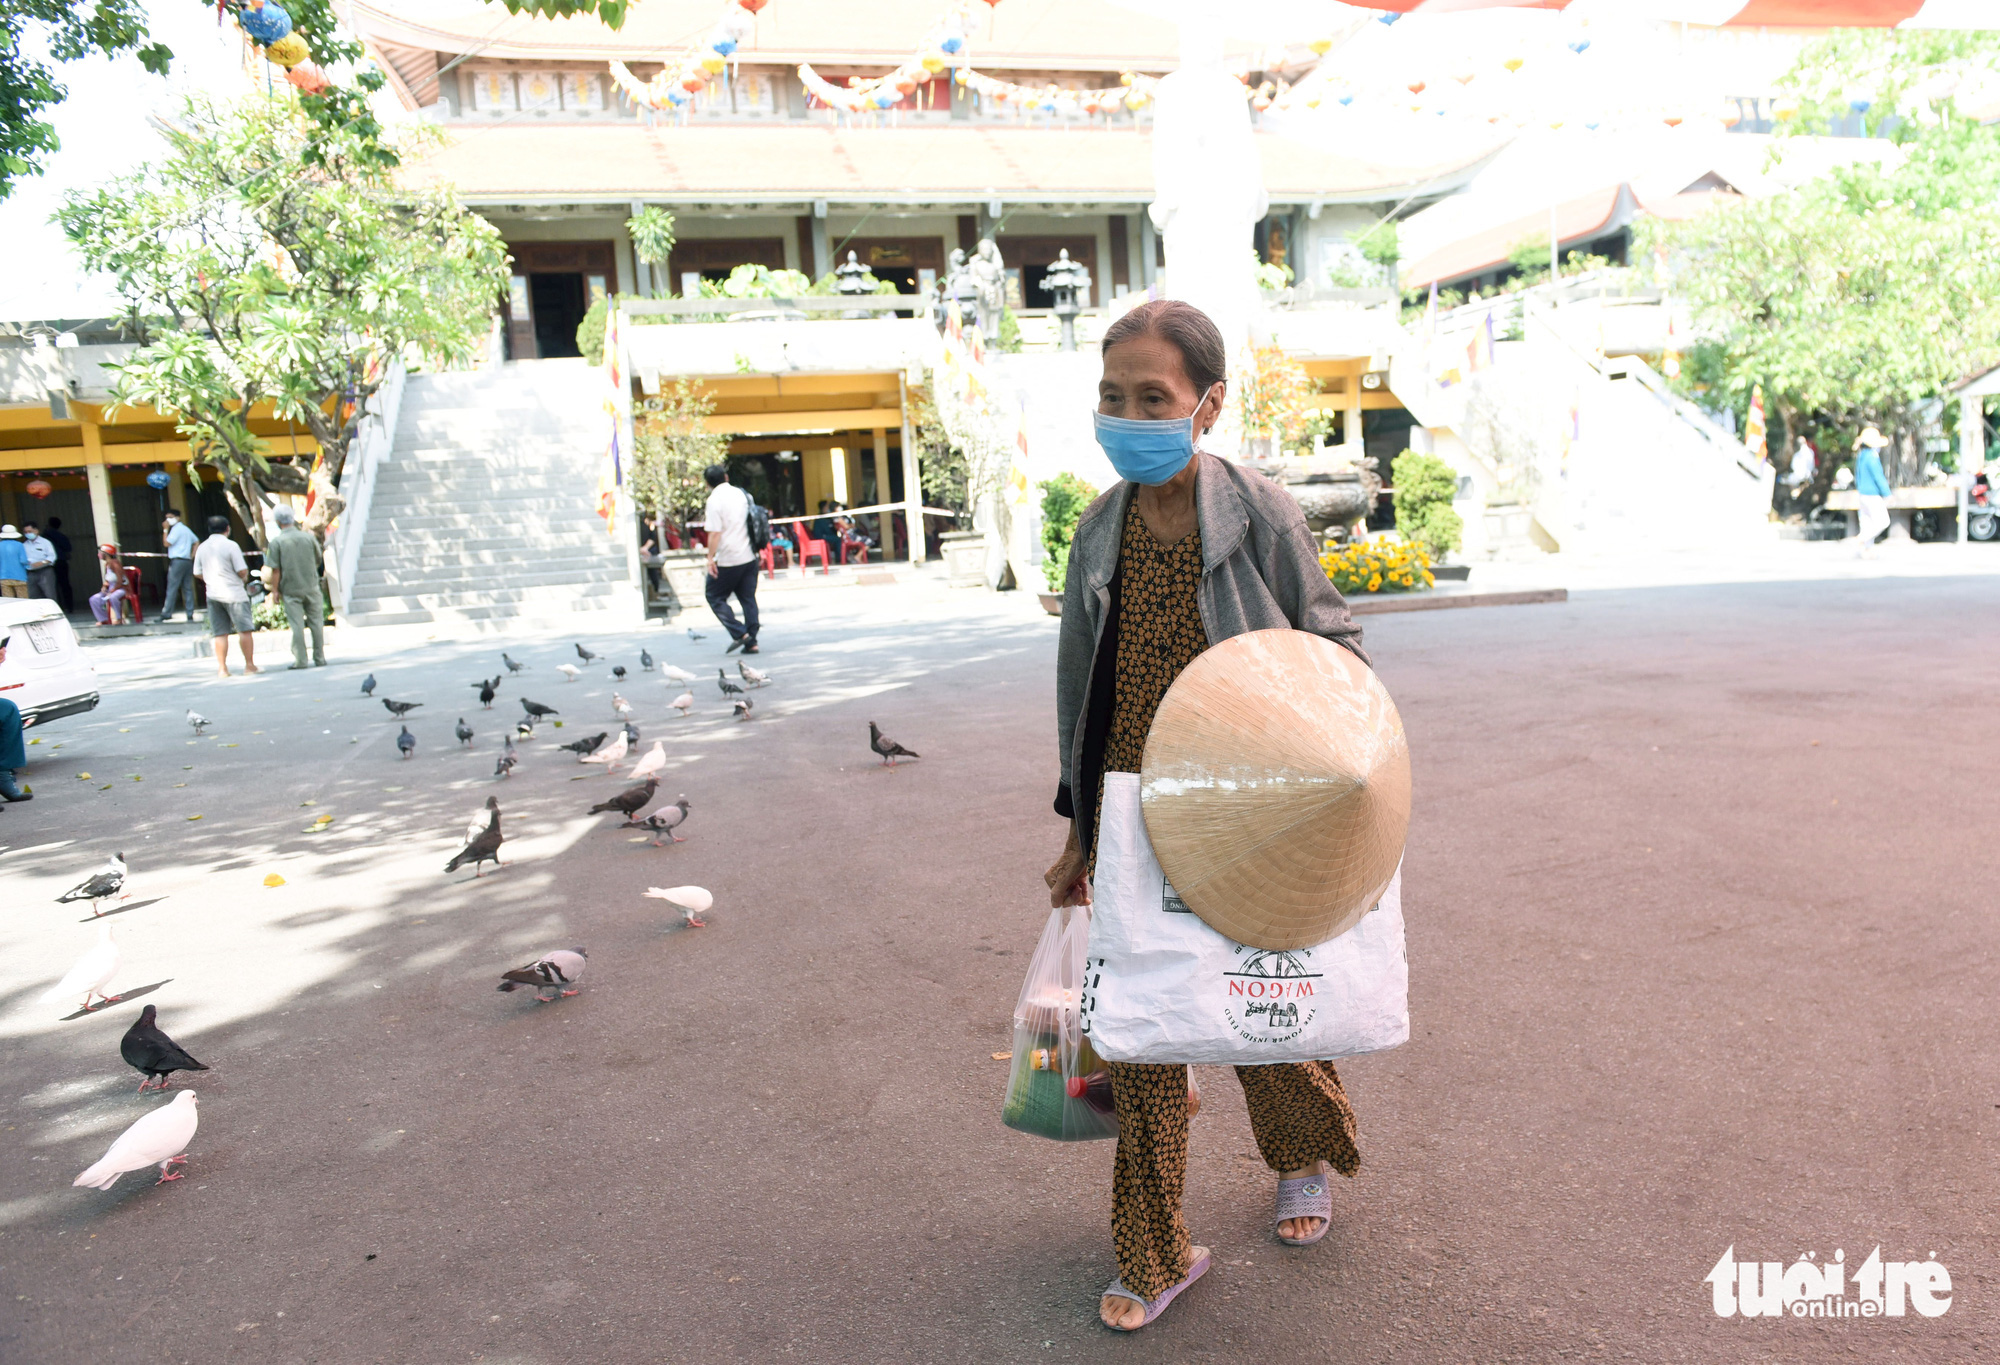 An elderly customer leaves after having obtained the staples she needs from the 'Zero-VND Happy Supermarket' located at Vinh Nghiem Pagoda in District 3, Ho Chi Minh City, Vietnam. Photo: Duyen Phan / Tuoi Tre